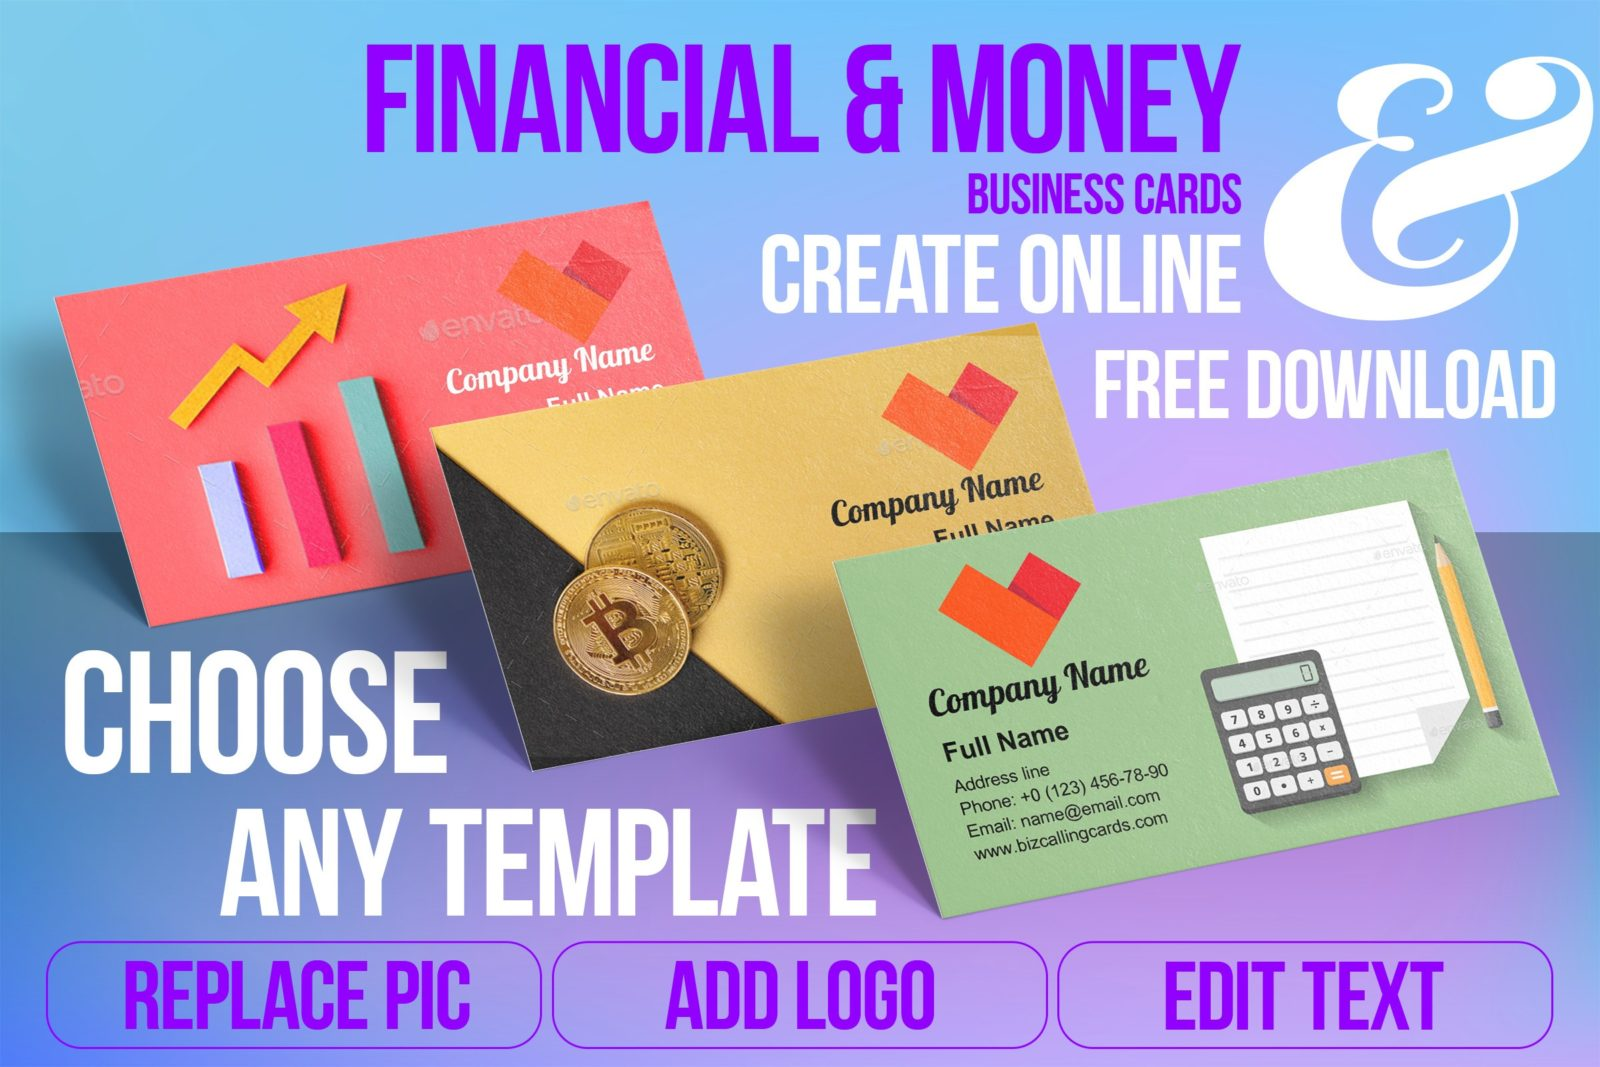 Business Card Templates For Financial & Money Free Download